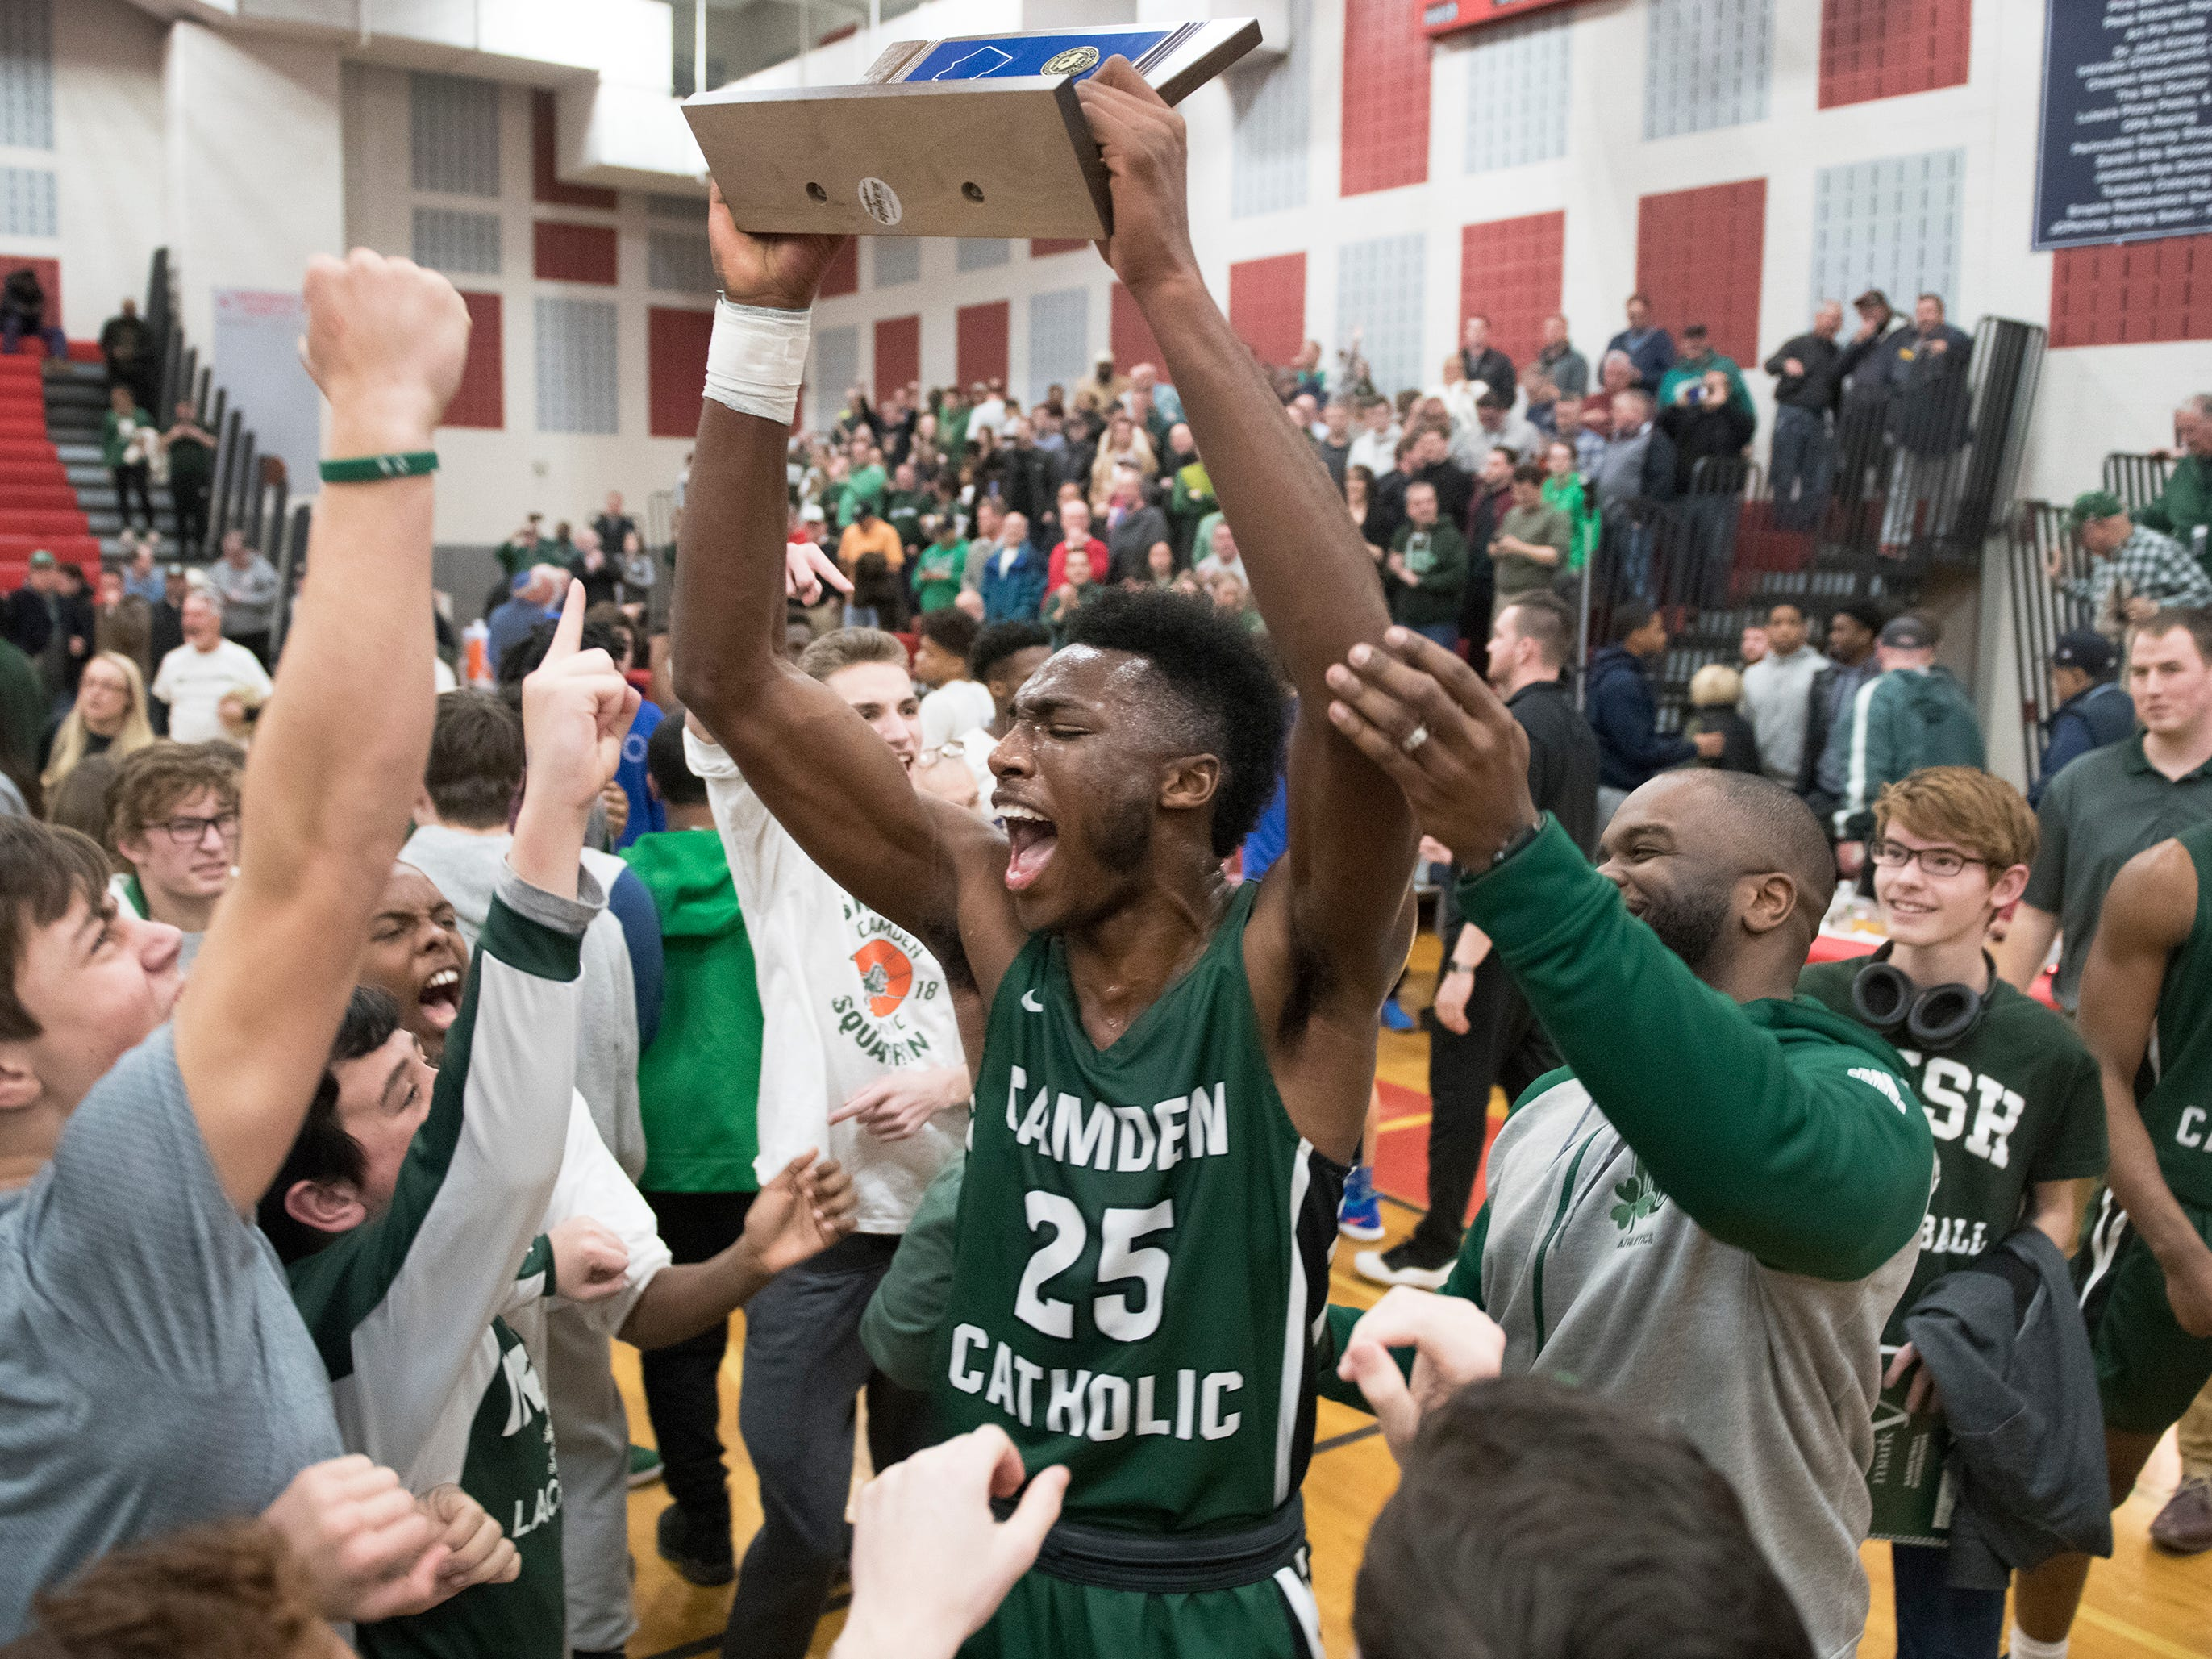 Camden Catholic's Babatunde Ajike hoists the trophy after Camden Catholic defeated Paul VI, 40-34, in the Non-Public A South boys basketball final played at Jackson Liberty High School on Tuesday, March 5, 2019.